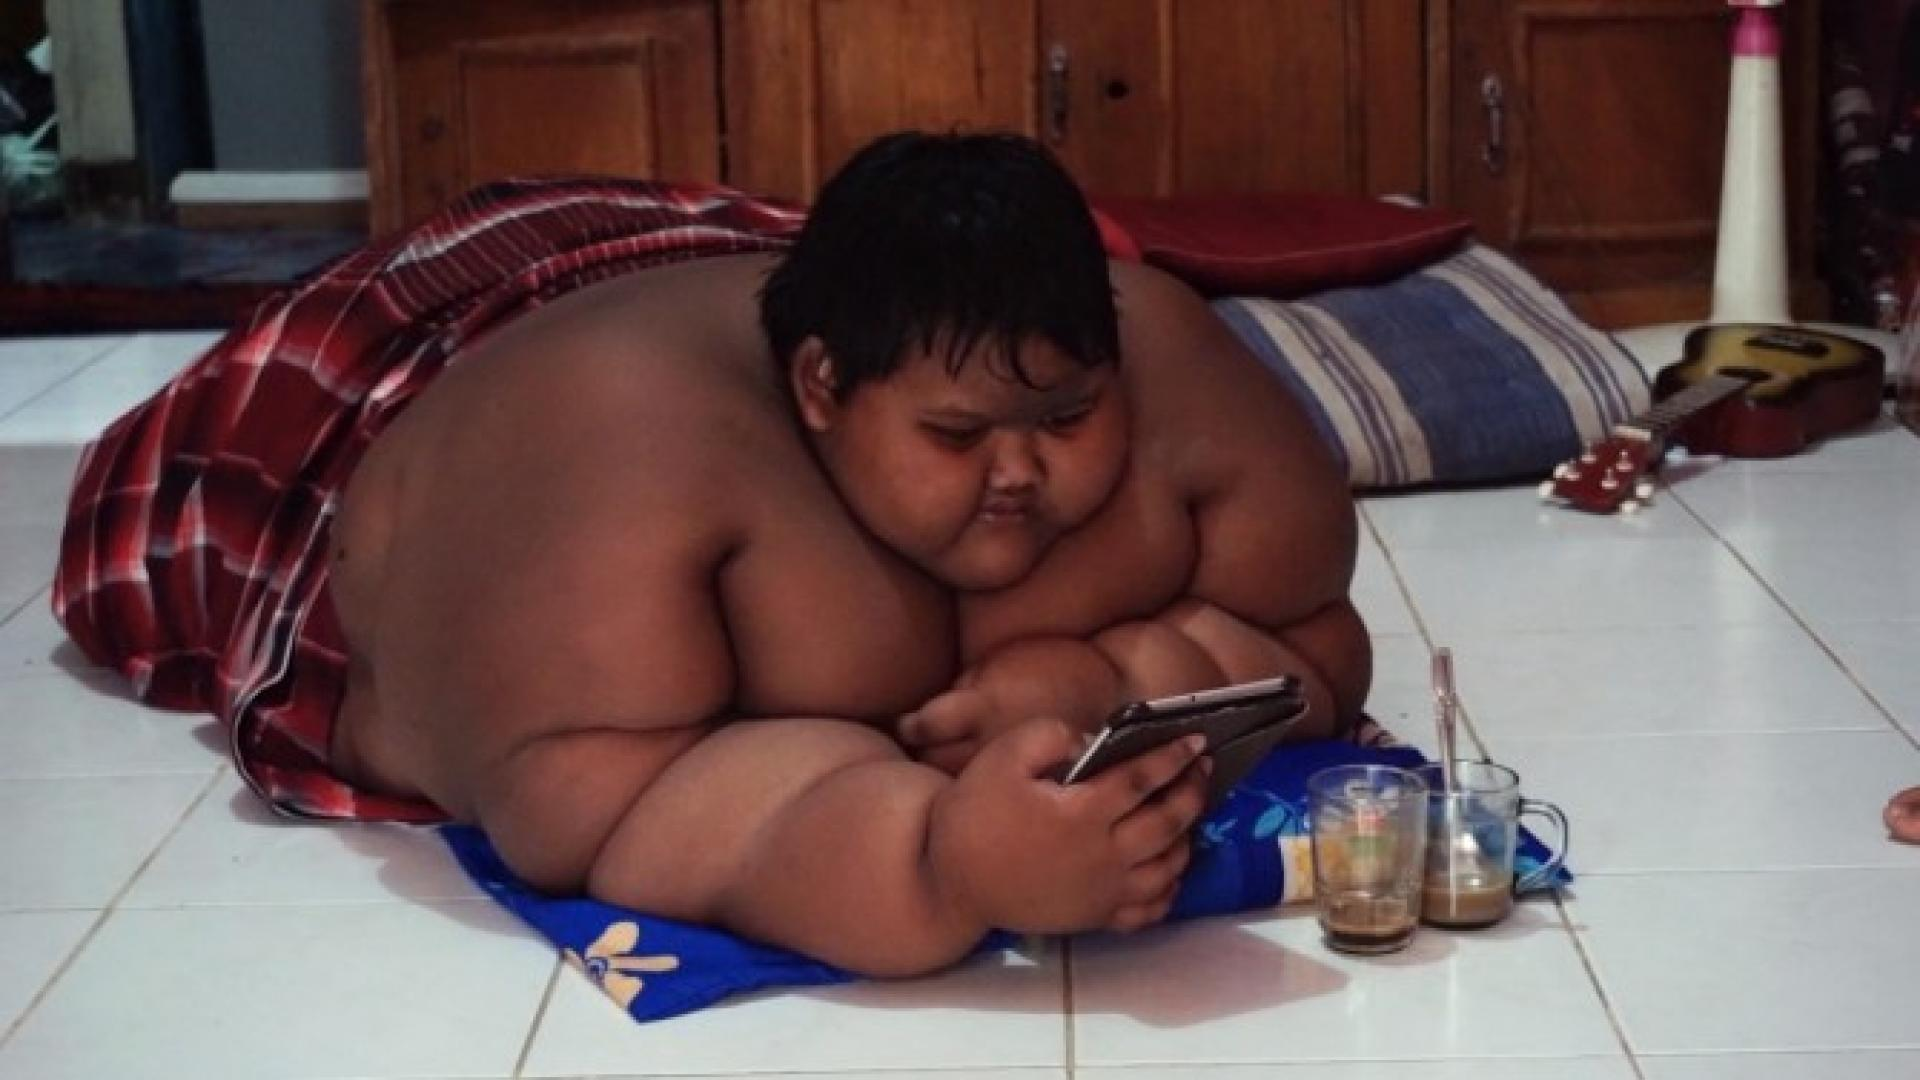 Morbidly Obese 10 Year Old Boy Weighs 423 Pounds Dreams Of Becoming Thin Inside Edition